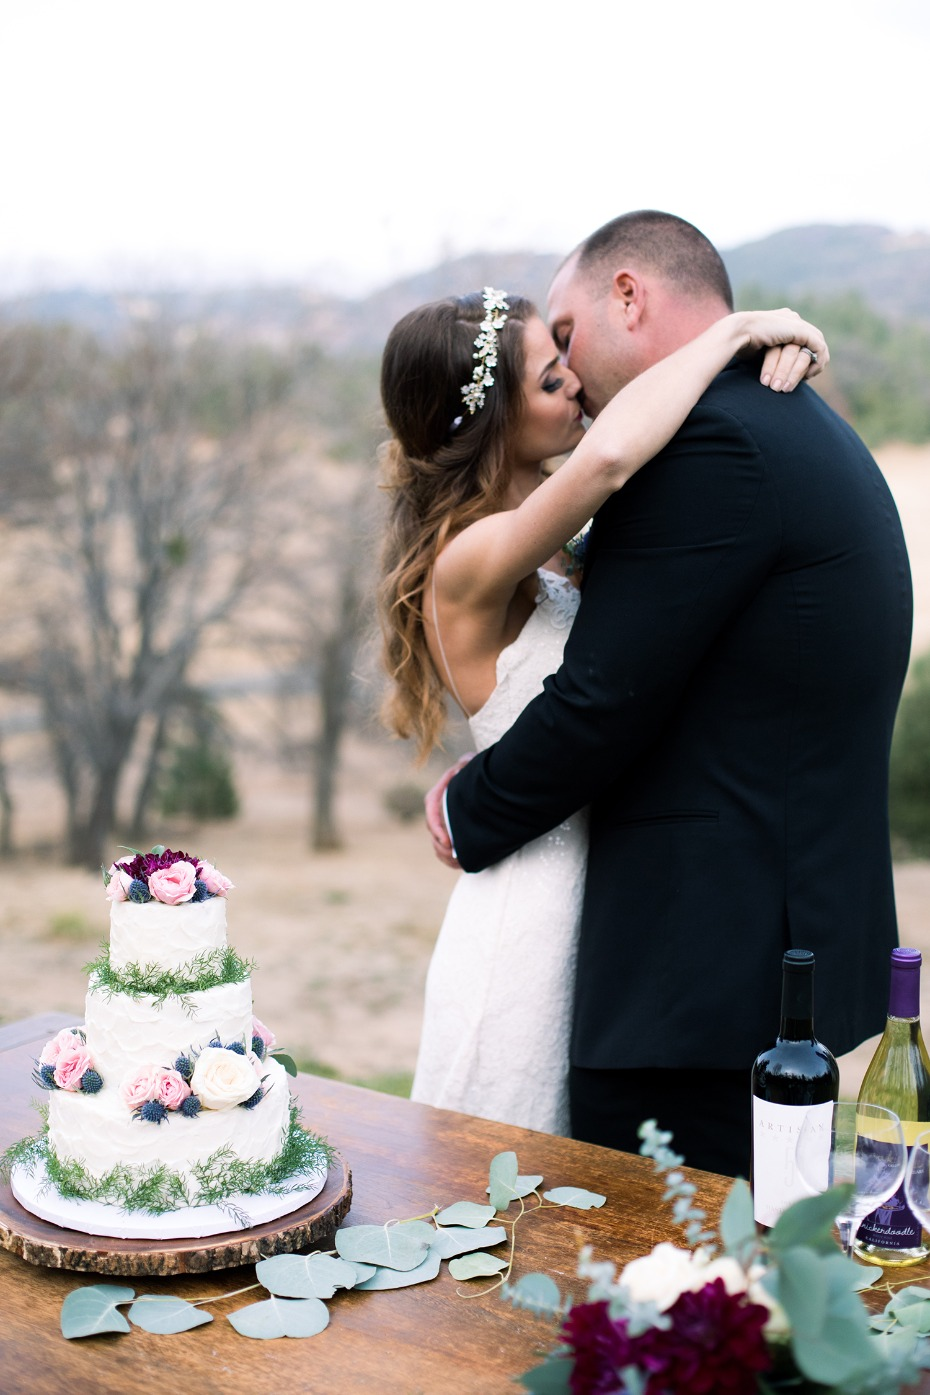 kissing over the cake